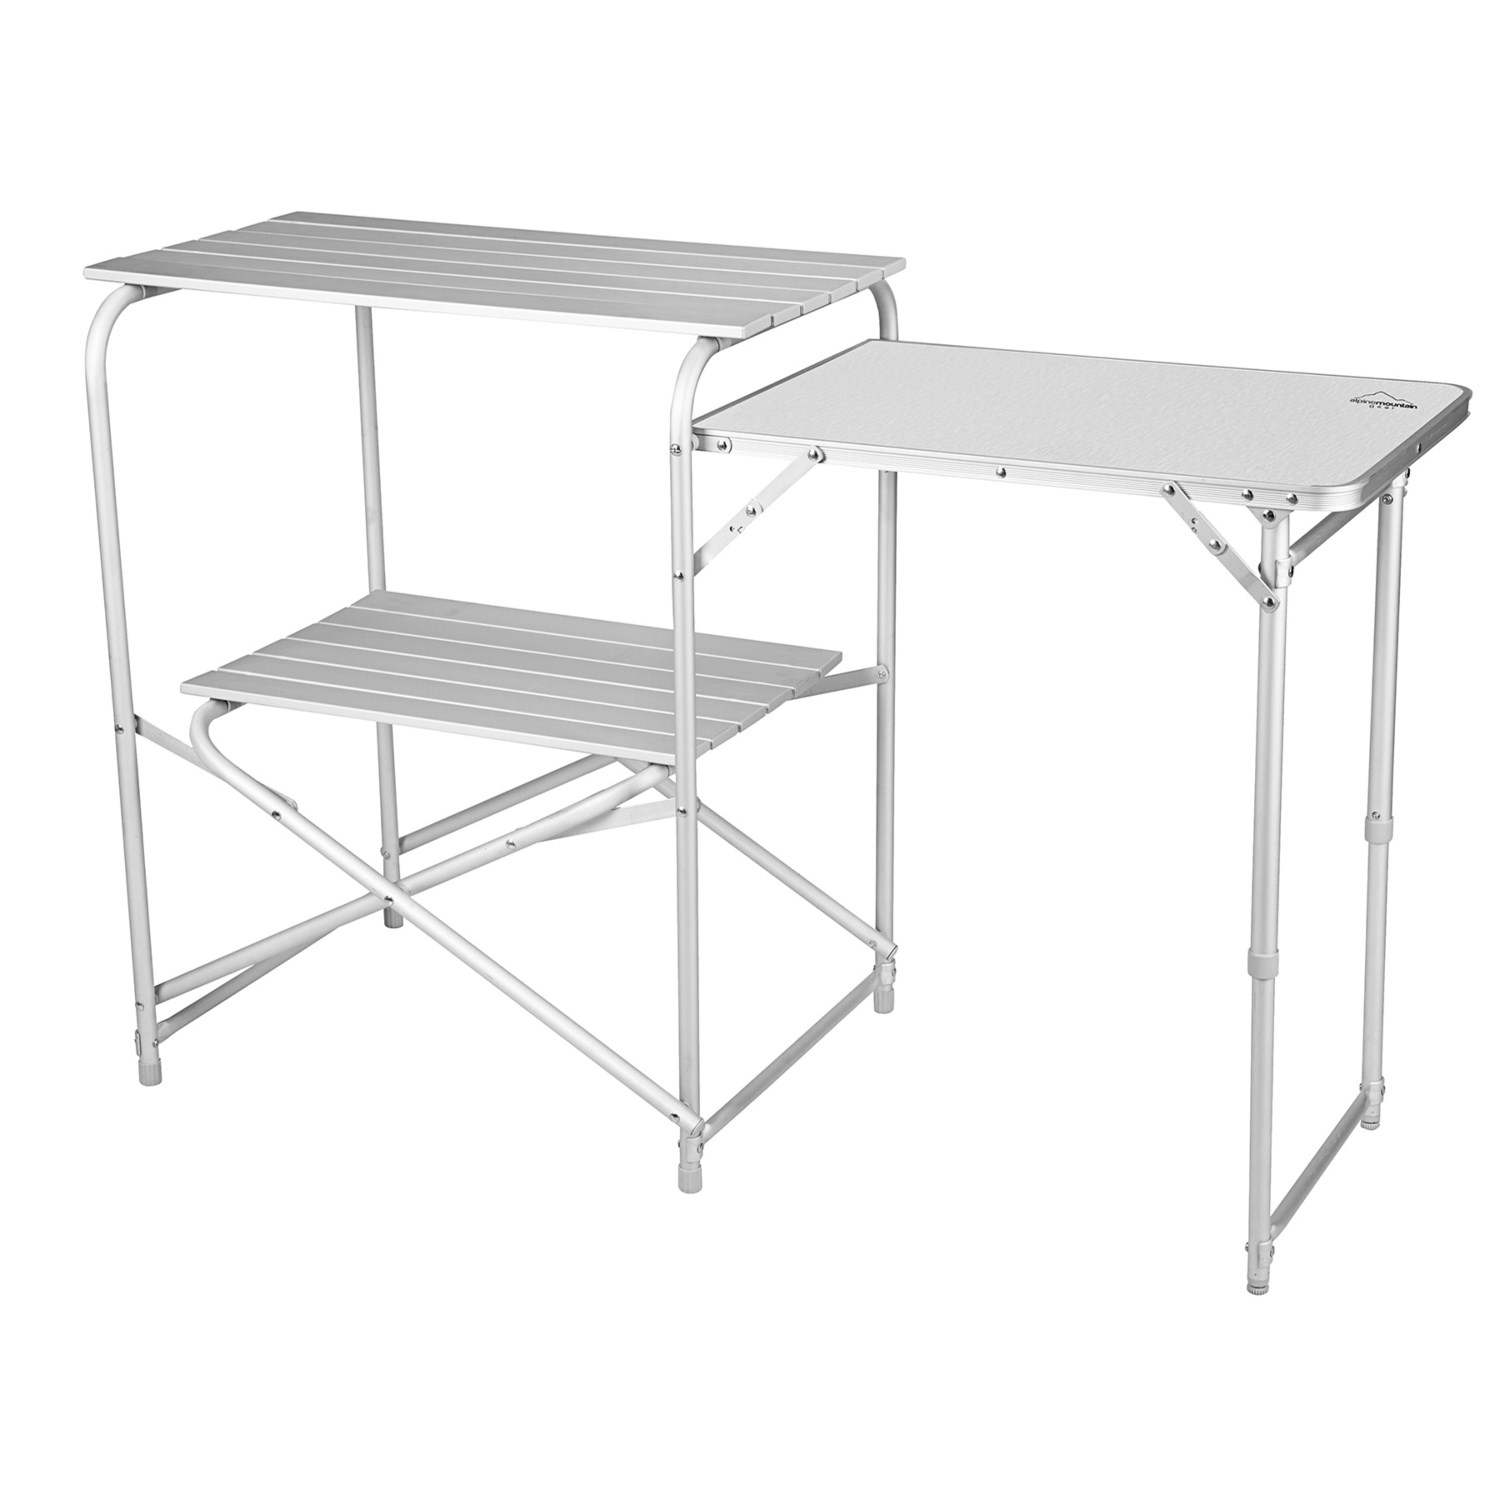 Camping Kitchen Table: Alpine Mountain Gear Roll-Top Camp Kitchen Table 7617K